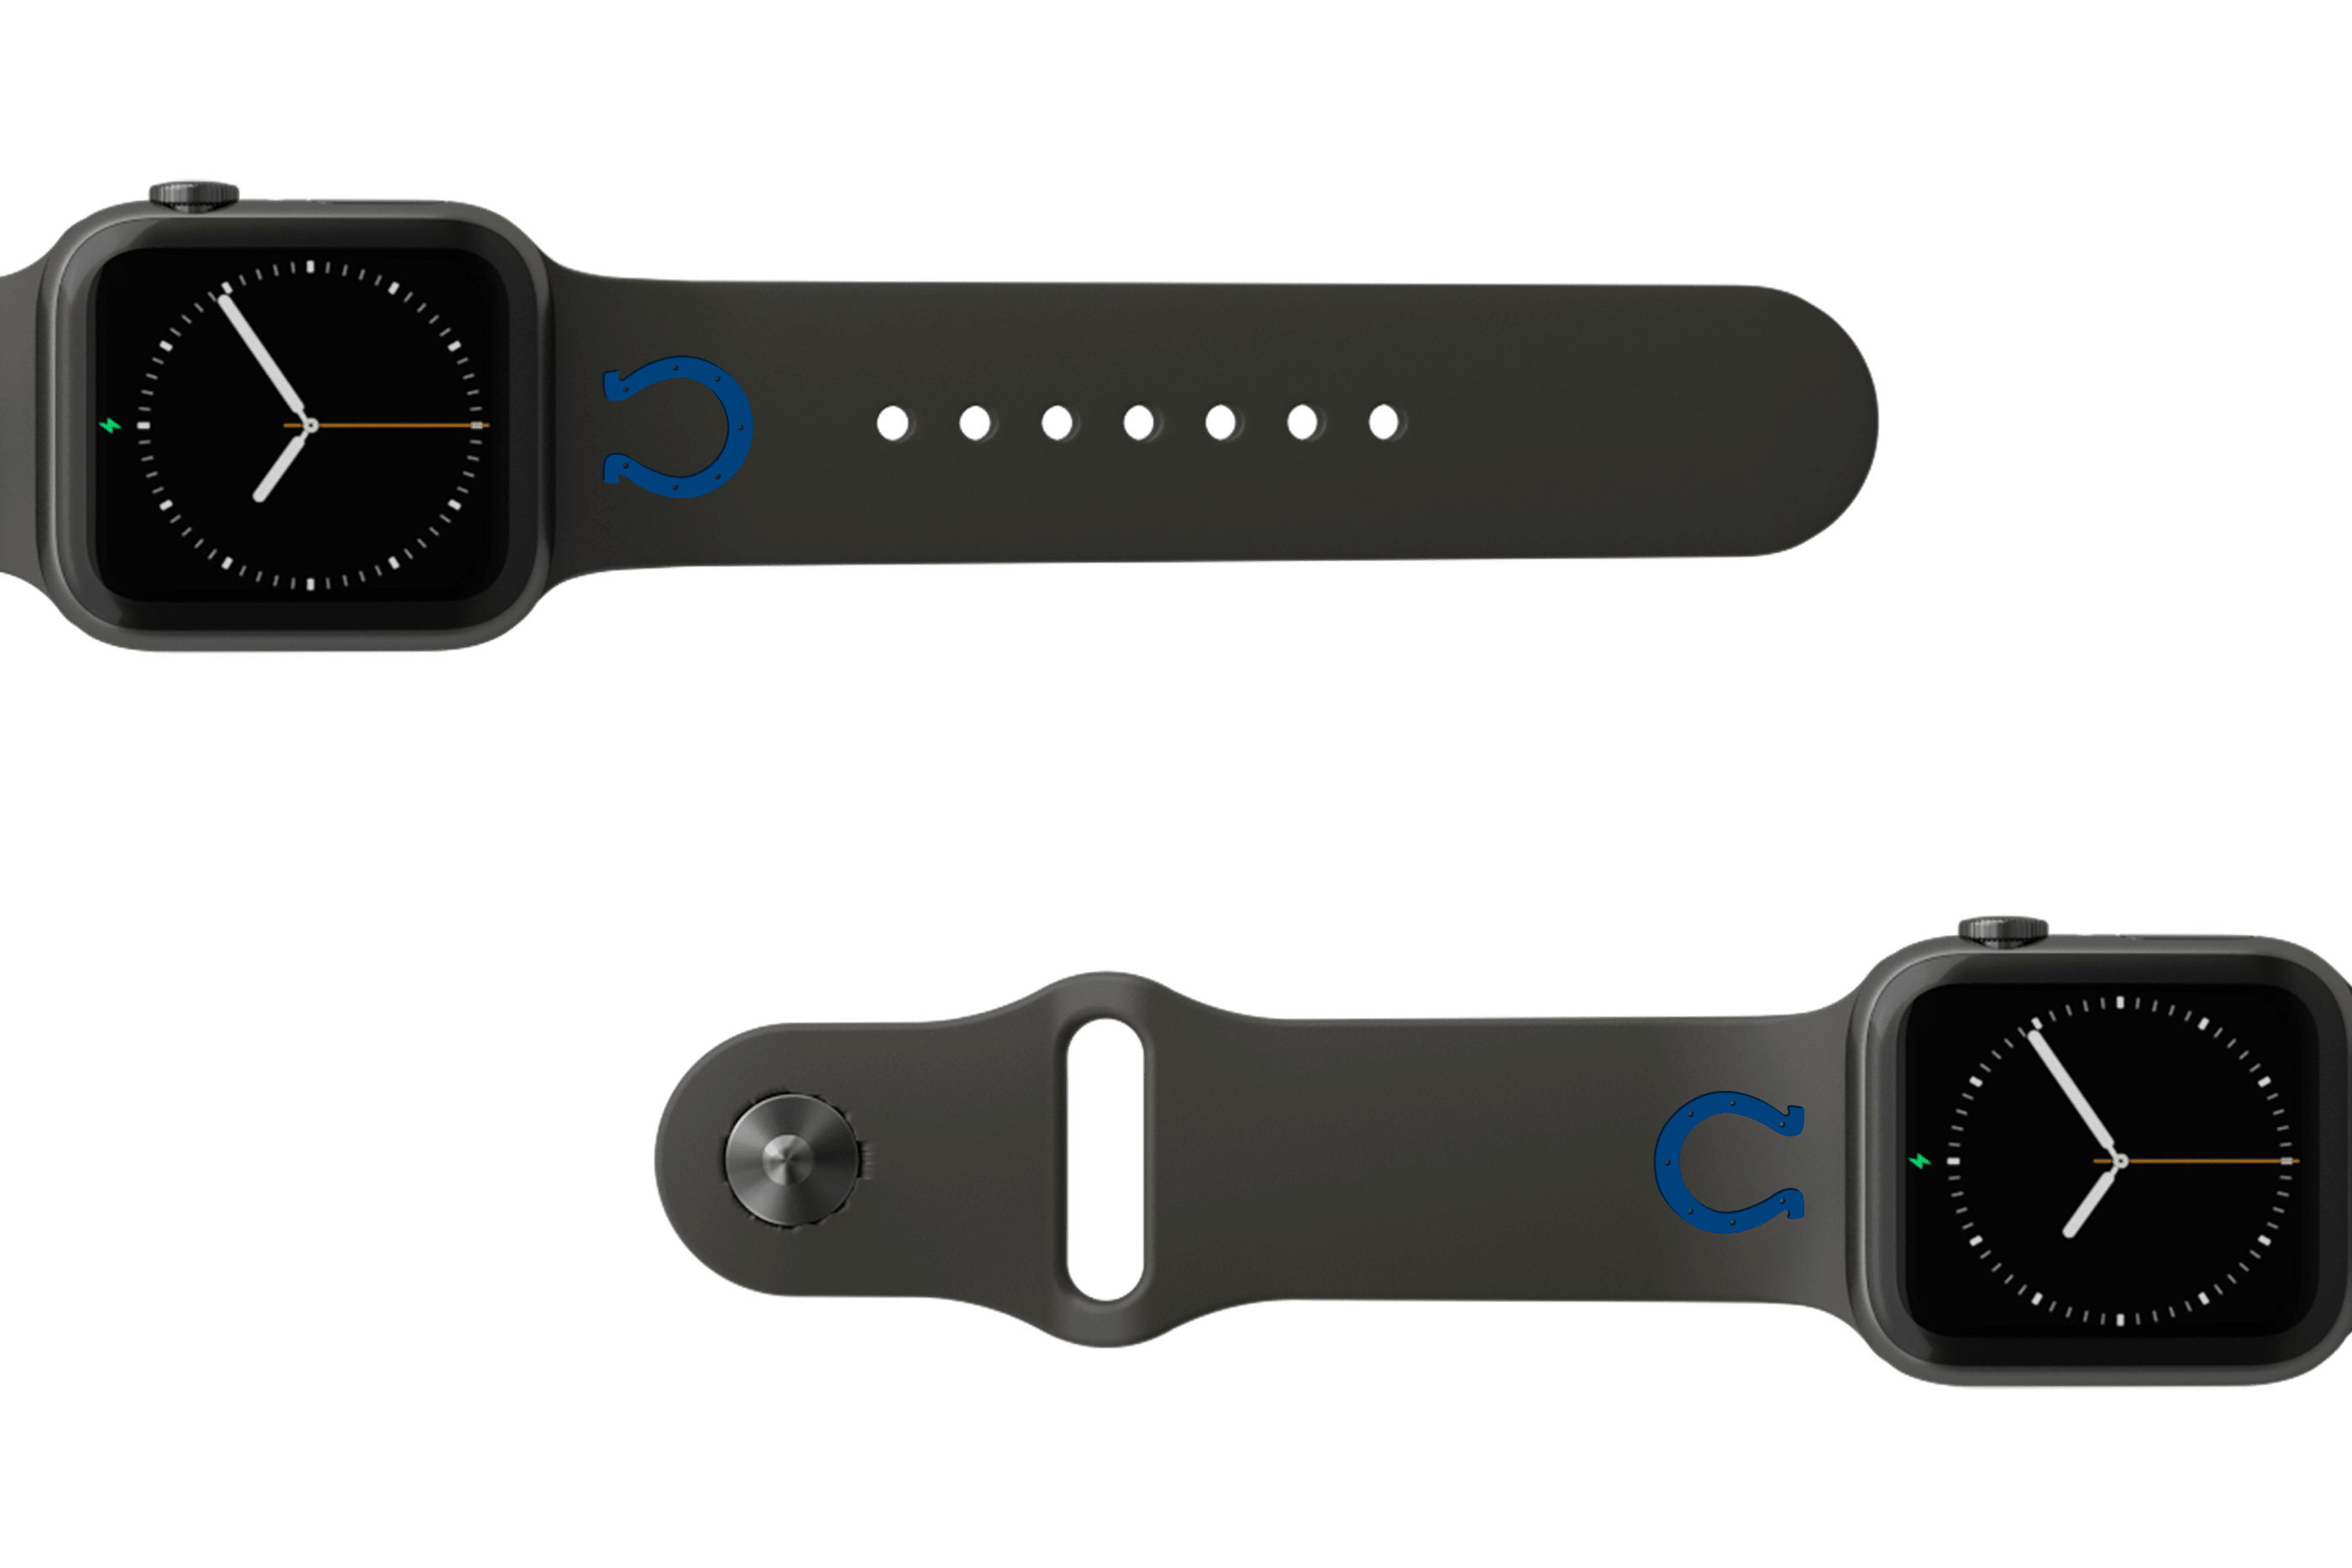 NFL Indianapolis Colts Black   apple watch band with gray hardware viewed from top down